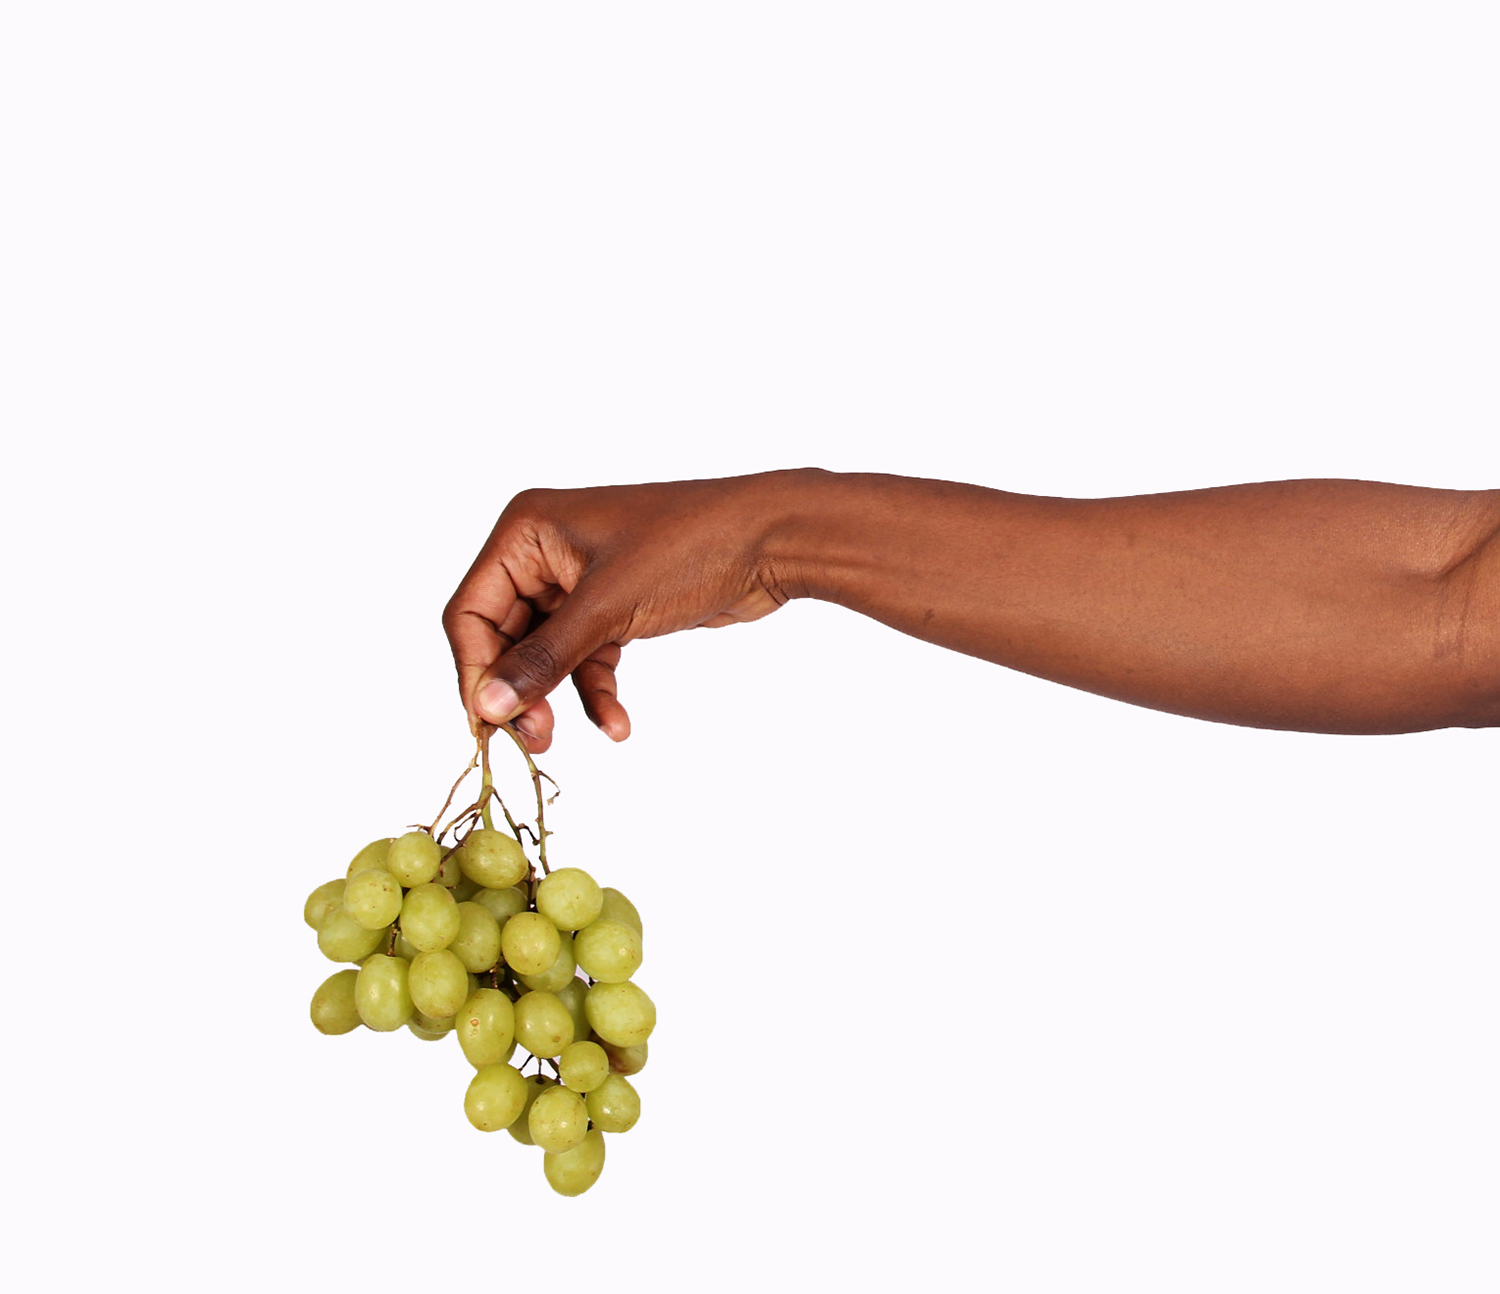 Hand holding green grapes